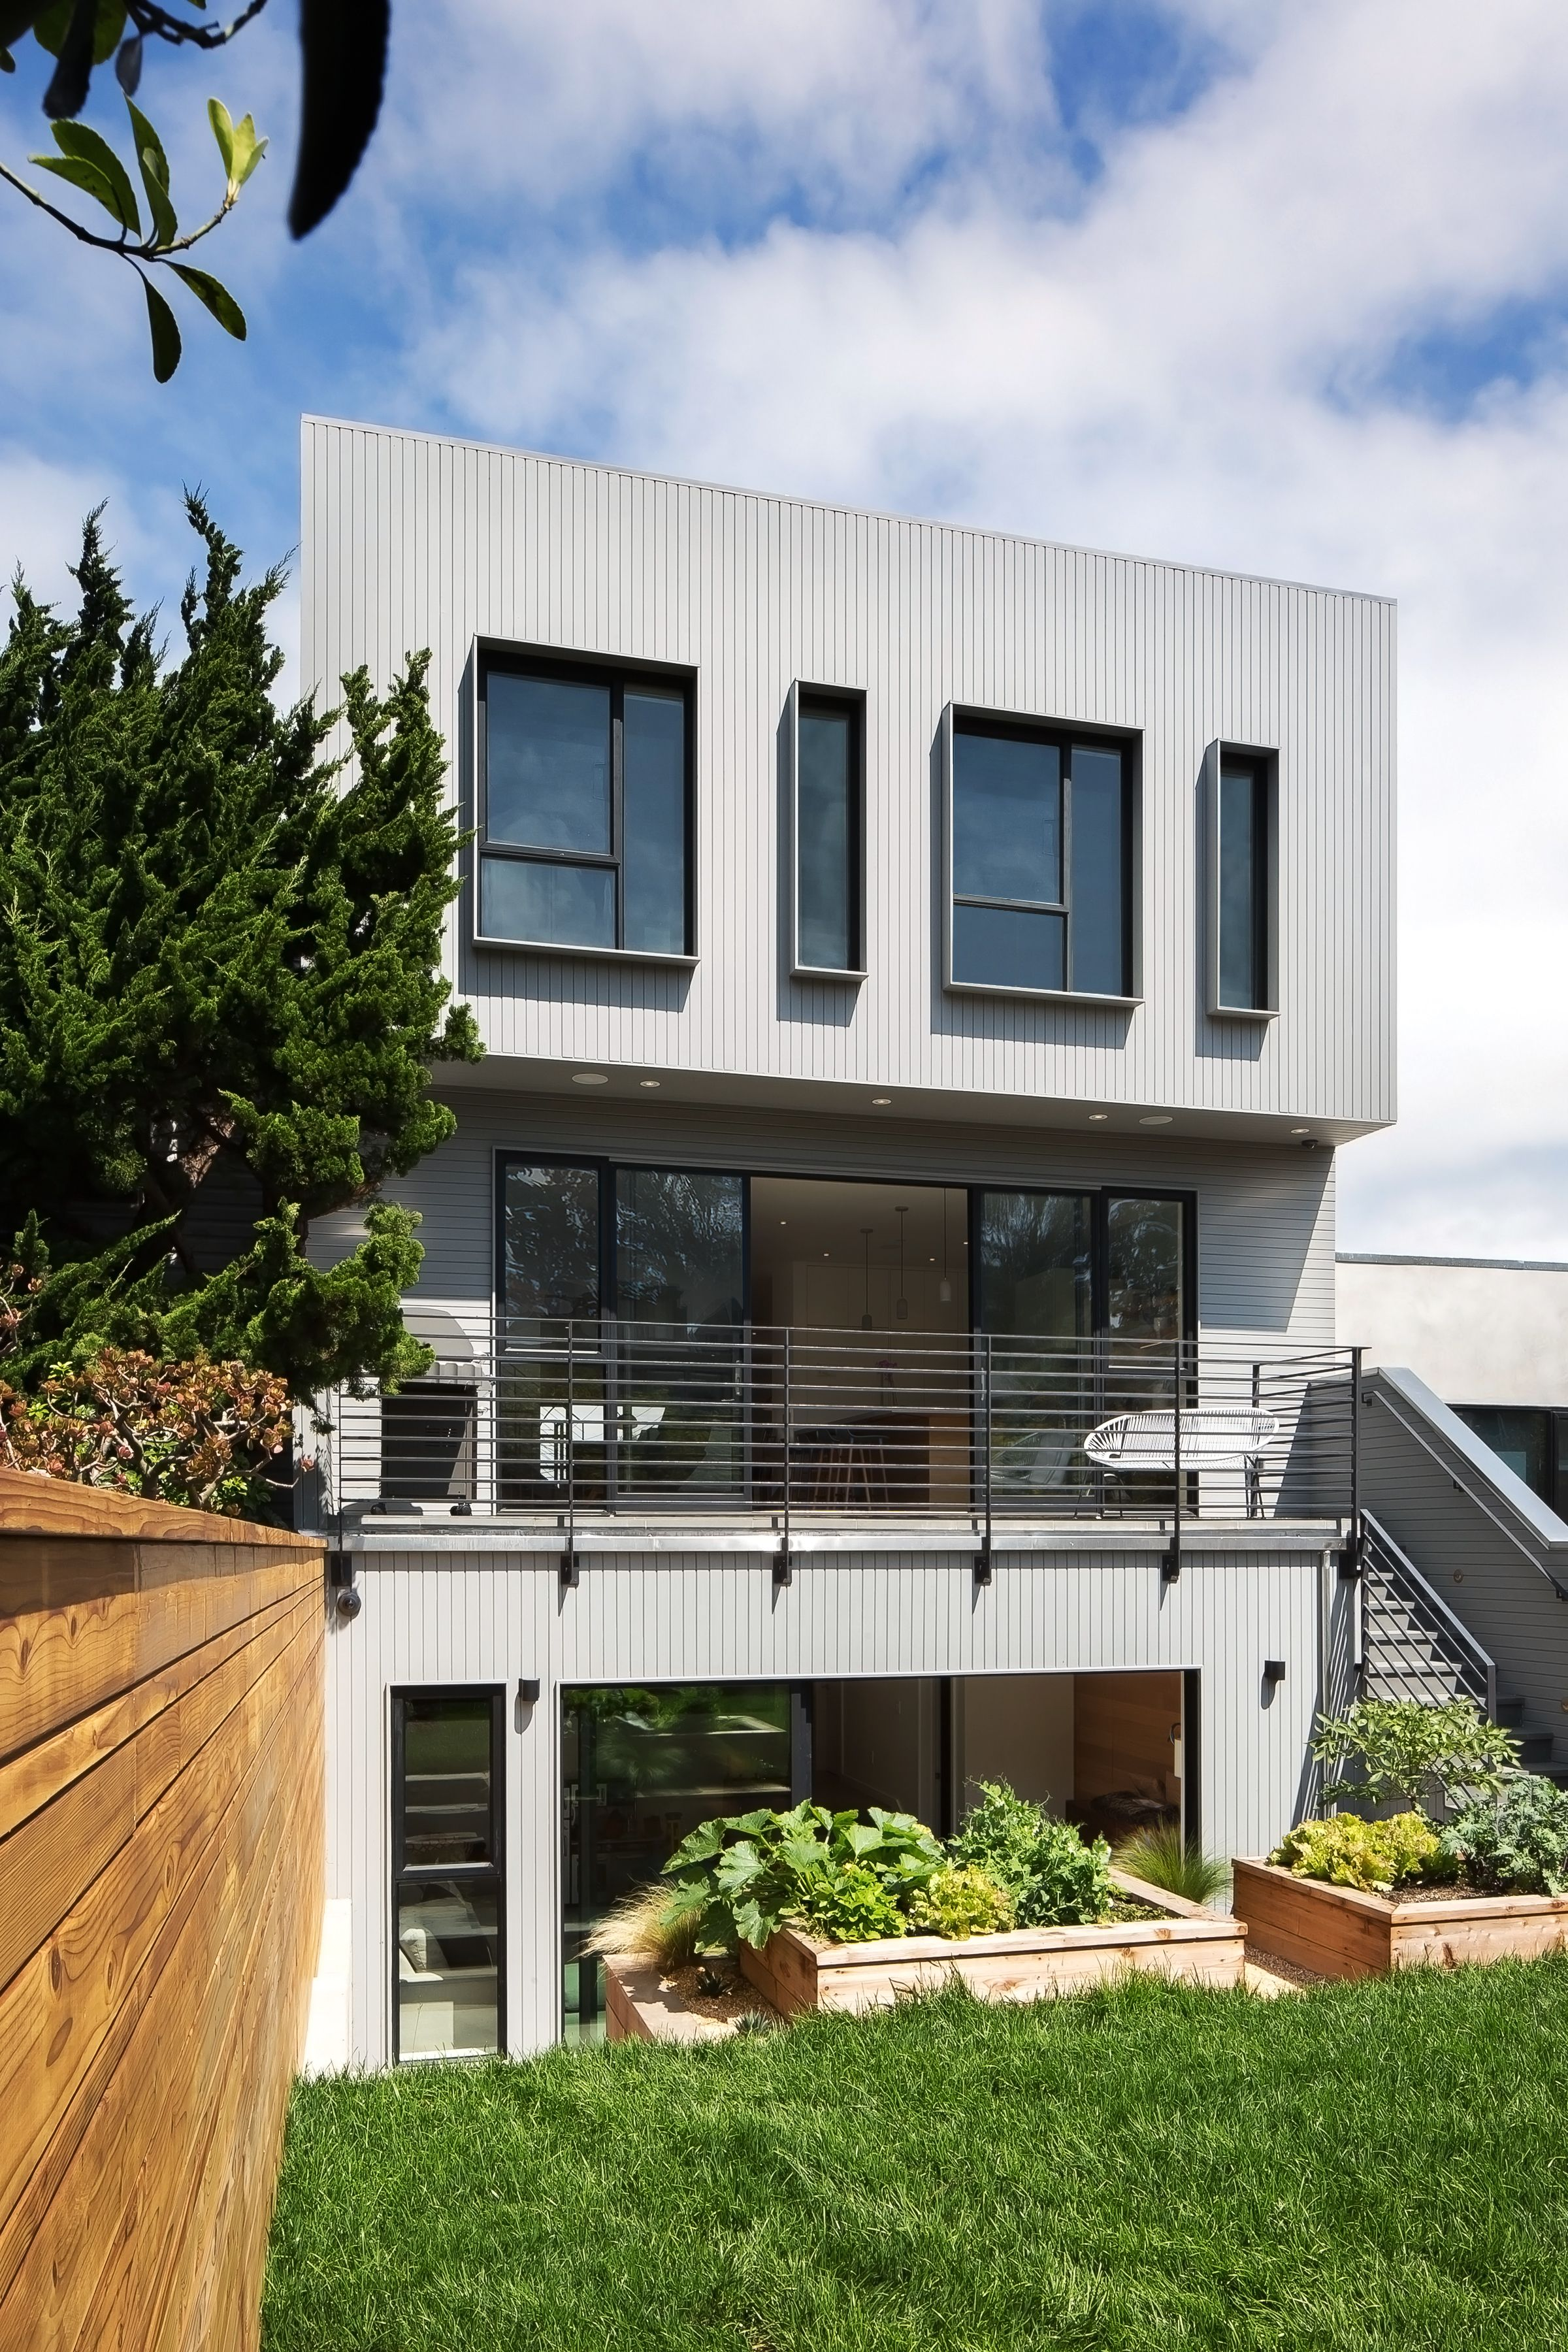 Exterior home design one story  th Street  Noe Valley by patrick perezdesignpad architecture